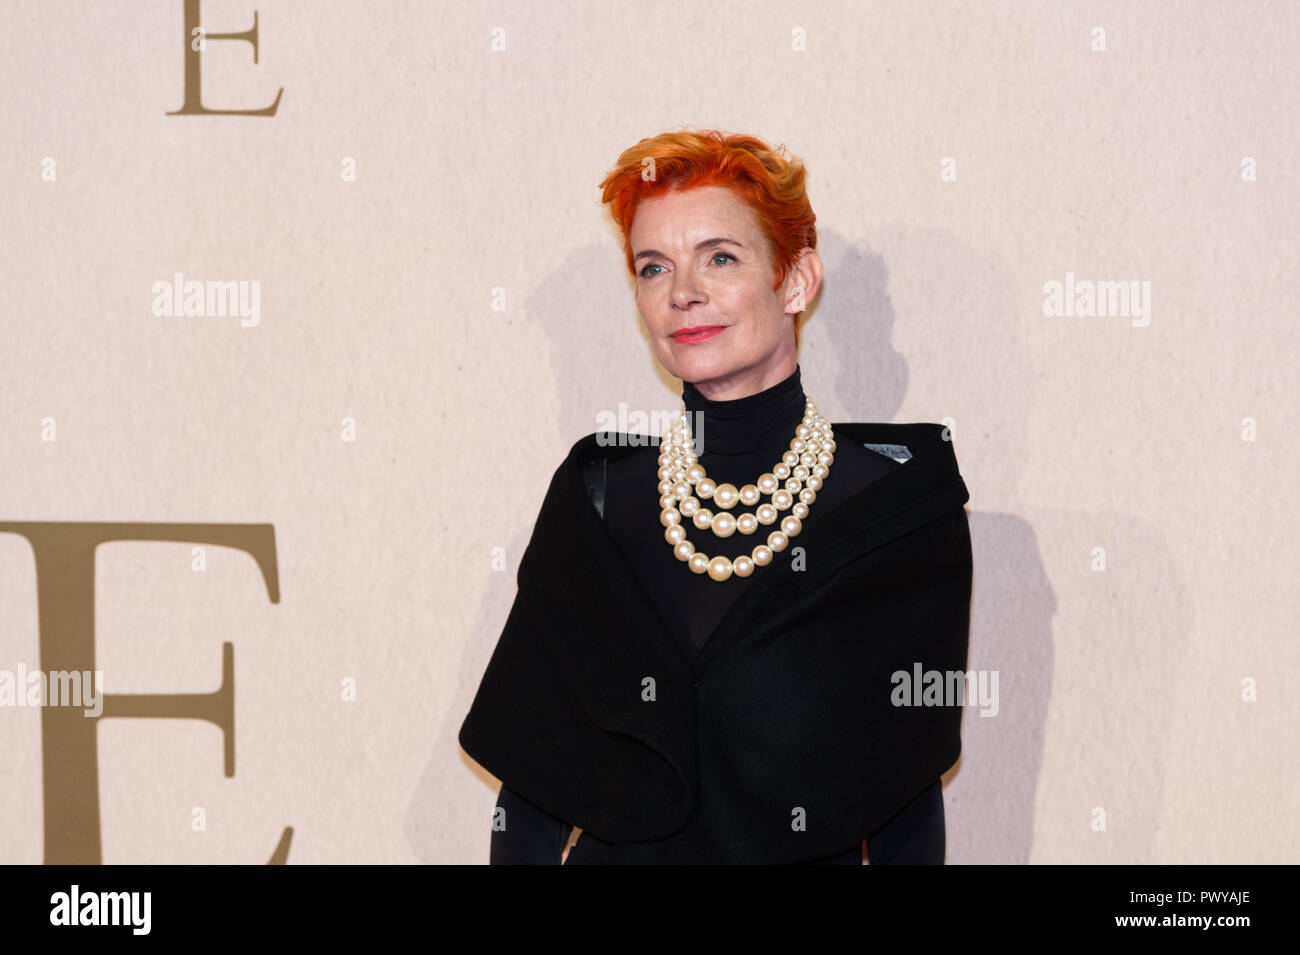 London, UK. 18th October 2018. Sandy Powell attends the UK film premiere of 'The Favourite' at BFI Southbank during the 62nd London Film Festival American Express Gala. Credit: Wiktor Szymanowicz/Alamy Live News - Stock Image